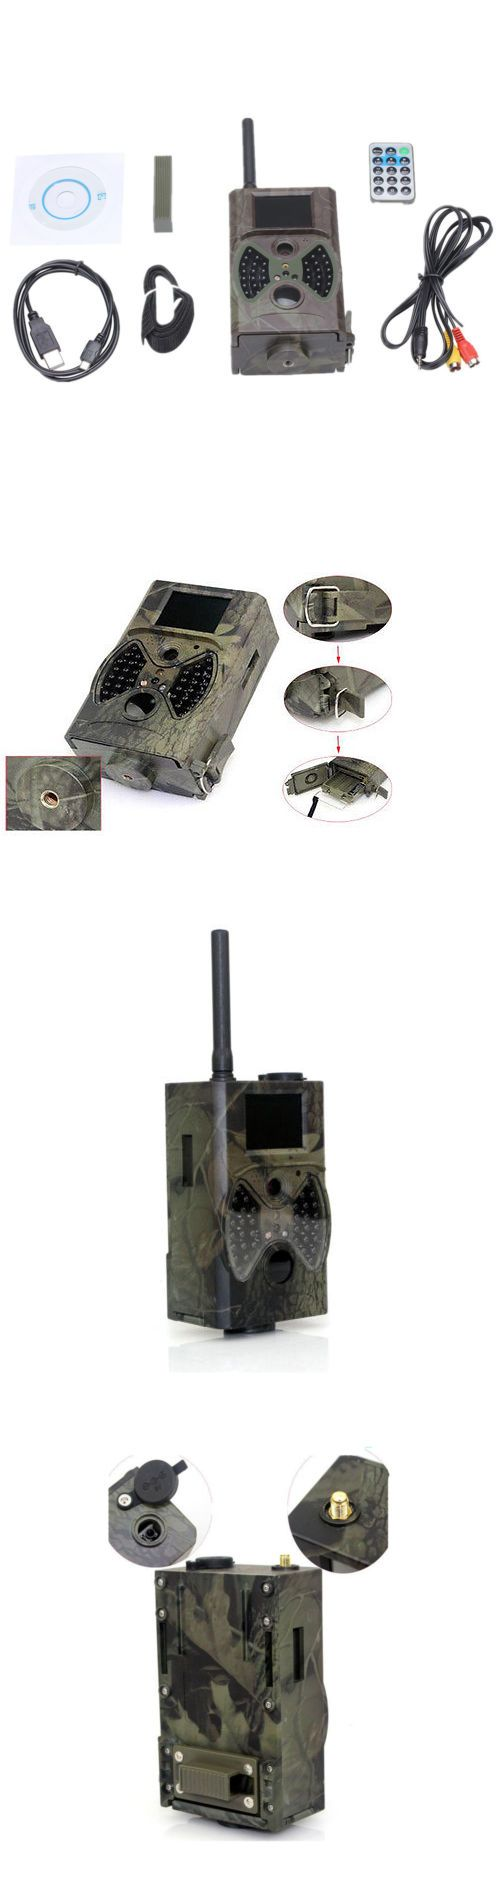 Game and Trail Cameras 52505: Suntek Hc-300M Ir Hunting Trail Camera Video Scouting Infrared Hd 12Mp Mms Gprs -> BUY IT NOW ONLY: $76.29 on eBay!